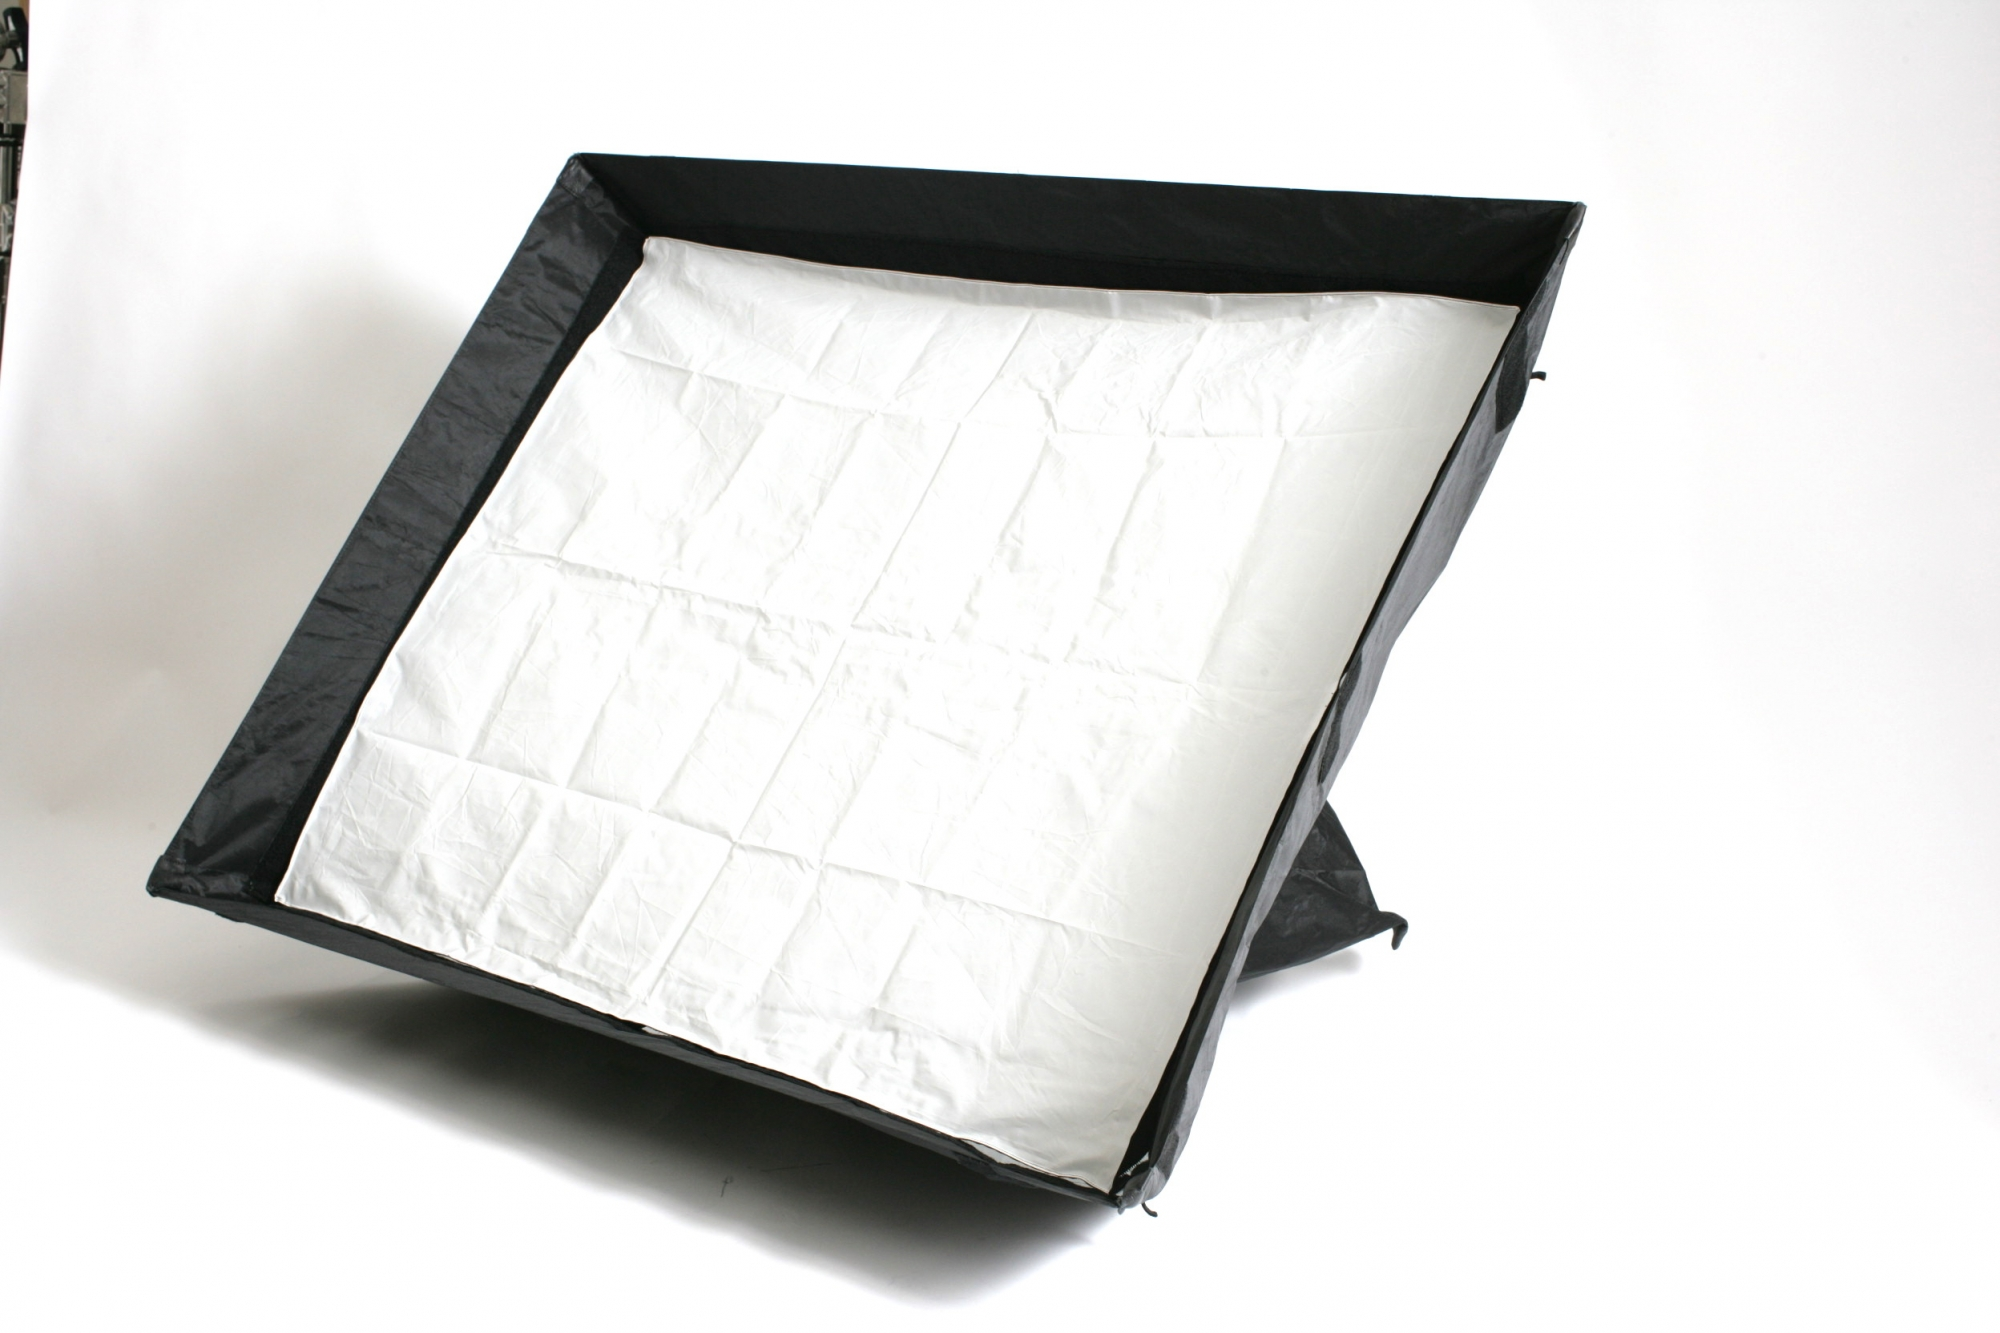 2 x Profoto soft boxes 3 X4 feet £10 per day